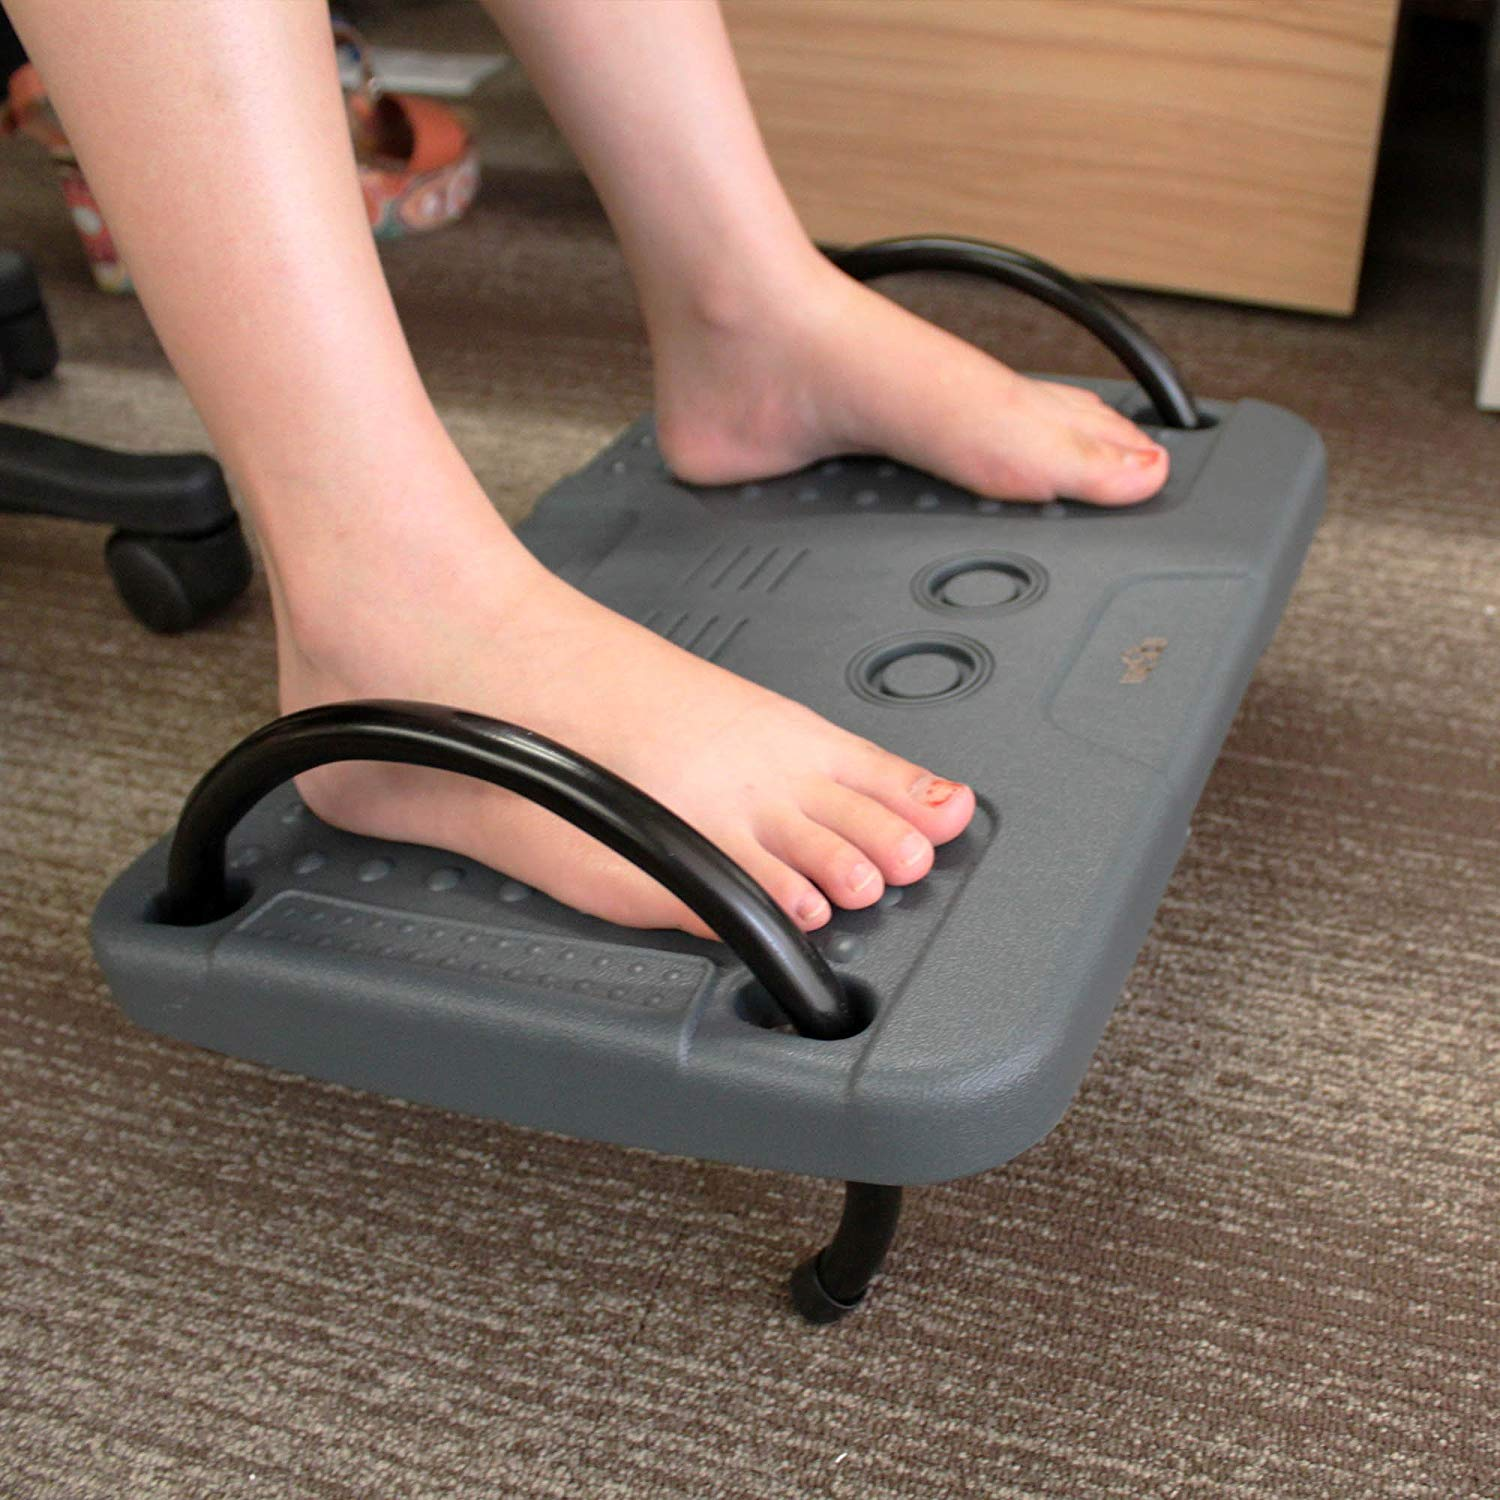 OMAX Ergonomic Adjustable Height Footrest New Pebbles Therapy Technique Adjustable Angle Footrest